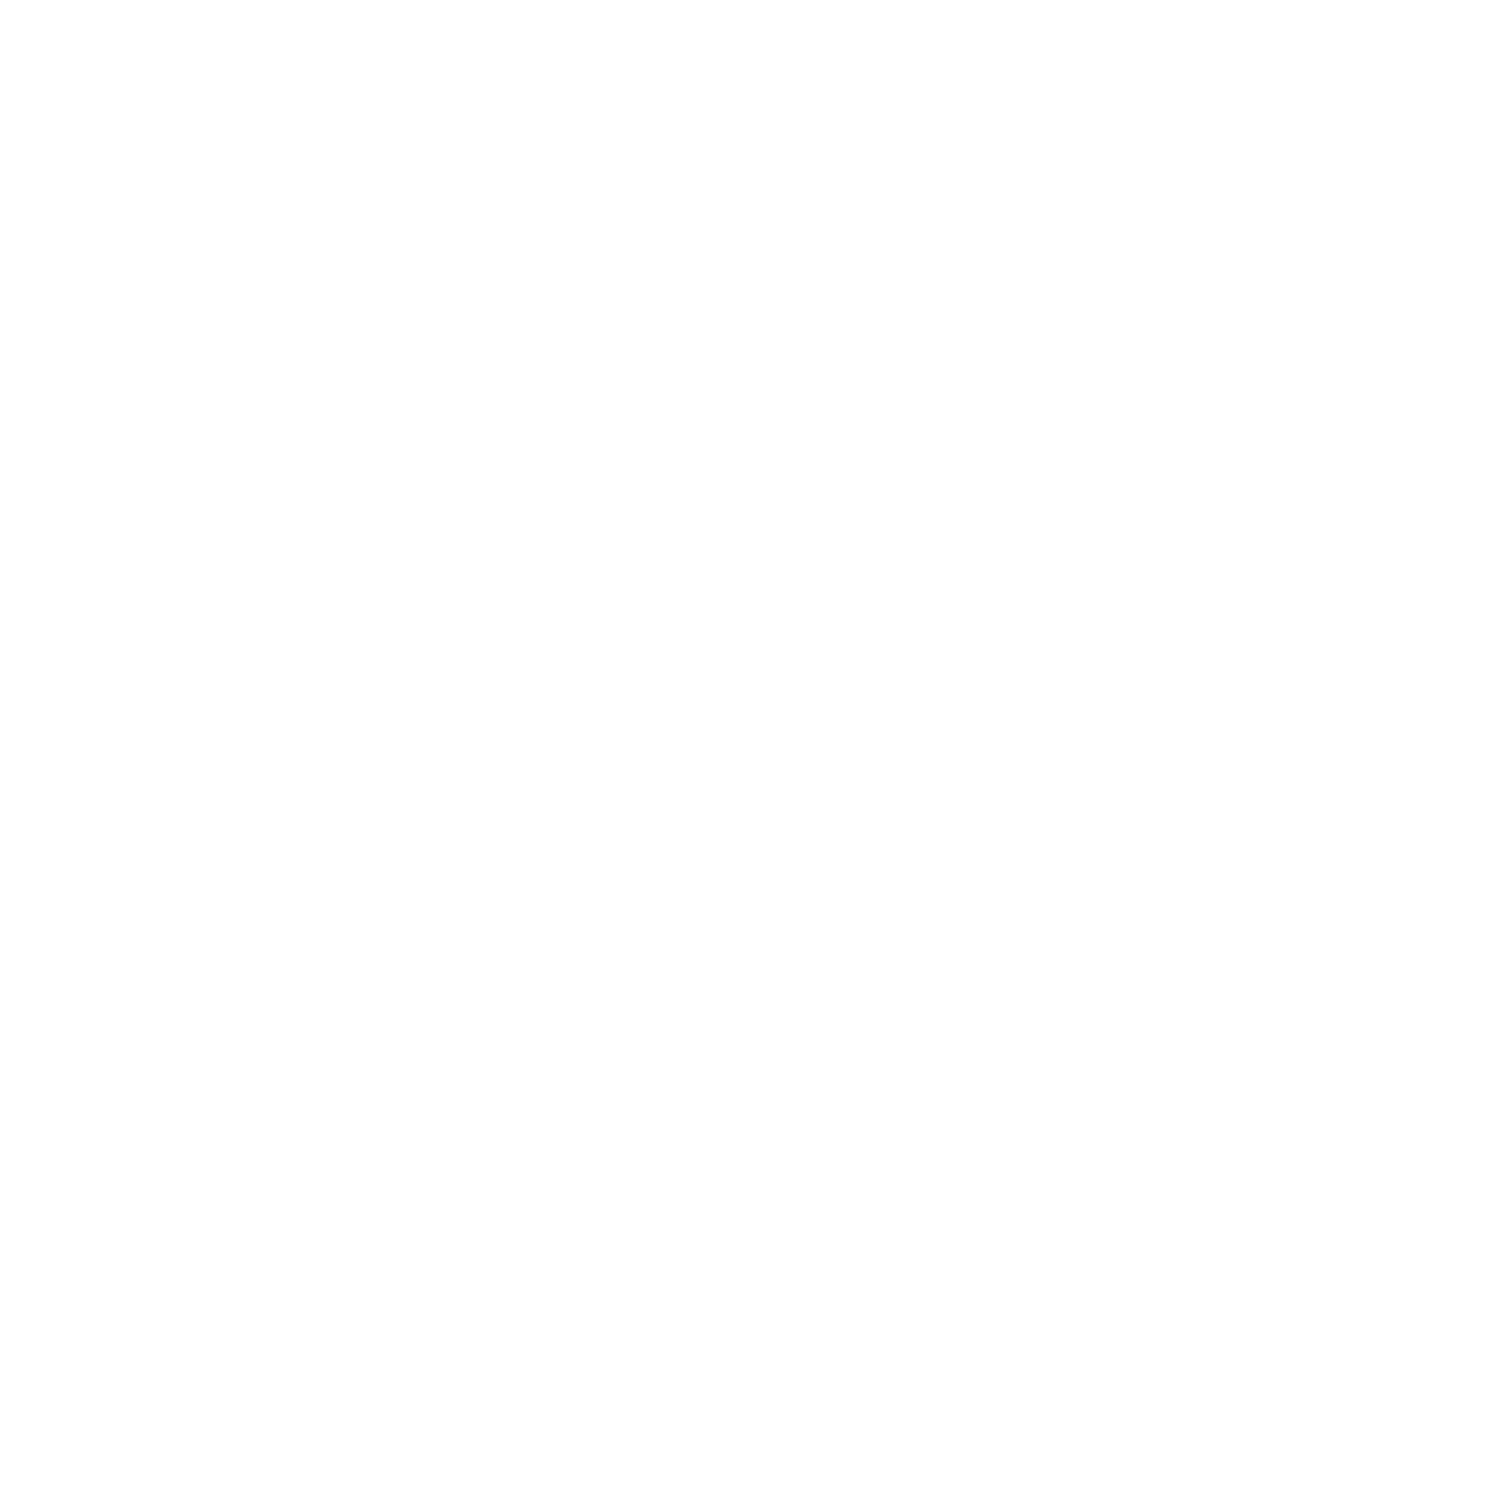 Bud Stannix LLP | Edmonton Accounting & Advisory Services